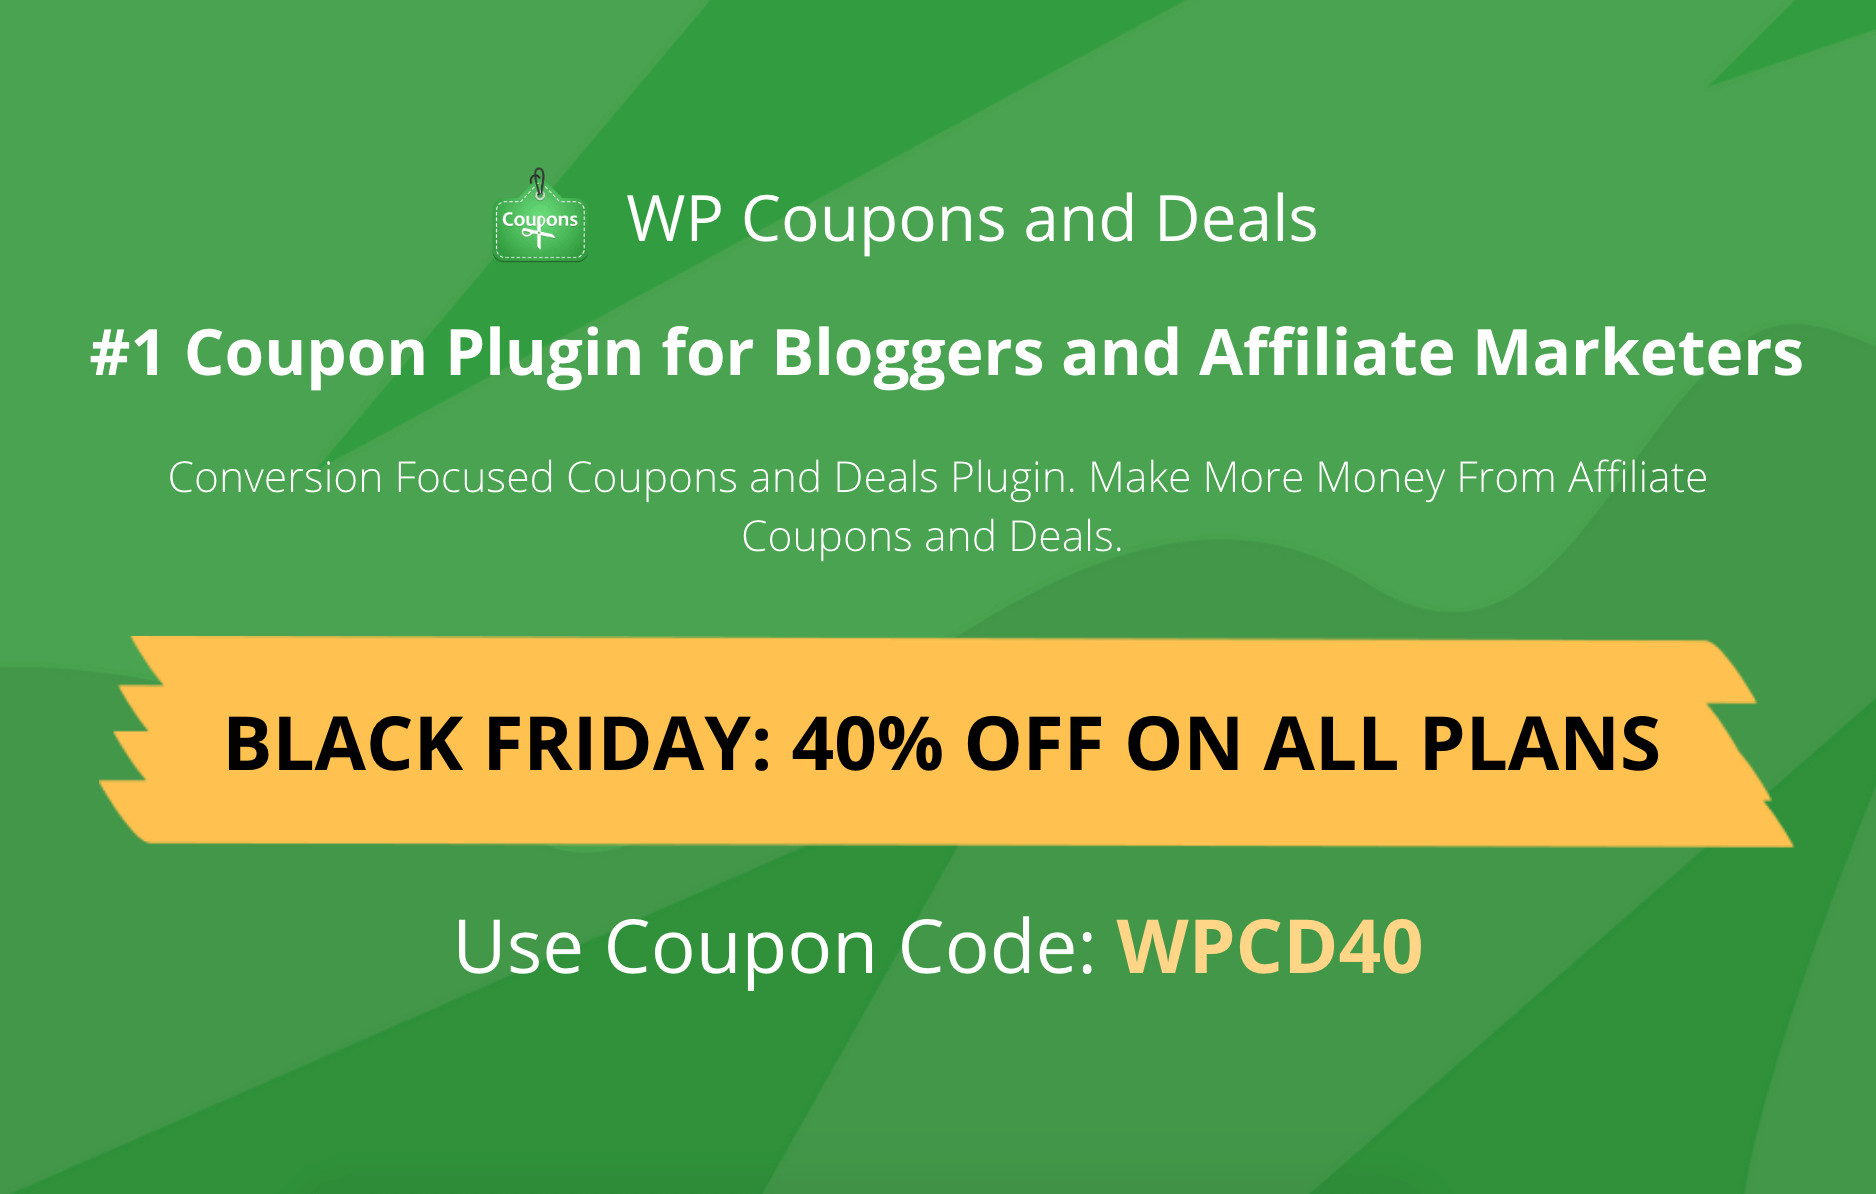 WP-Coupons-and-Deals-Black-Friday